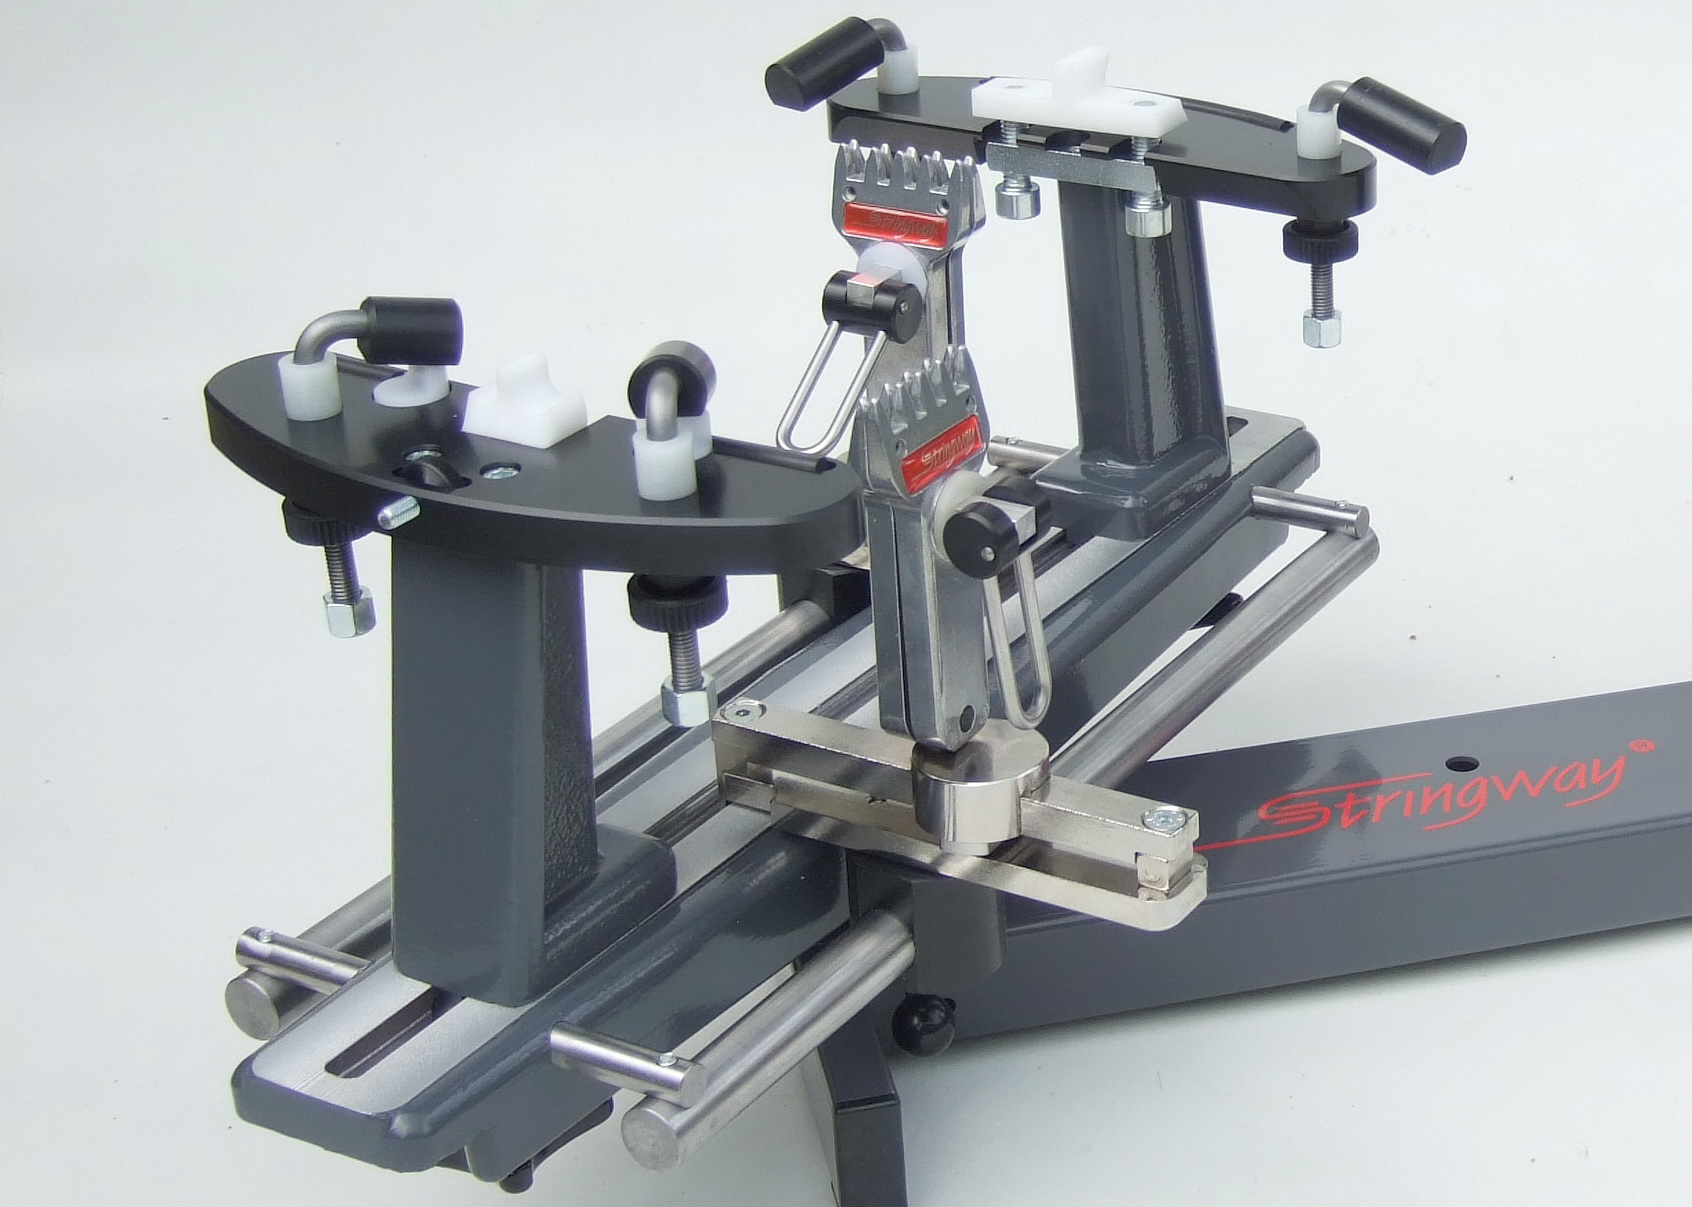 used tennis stringing machine for sale